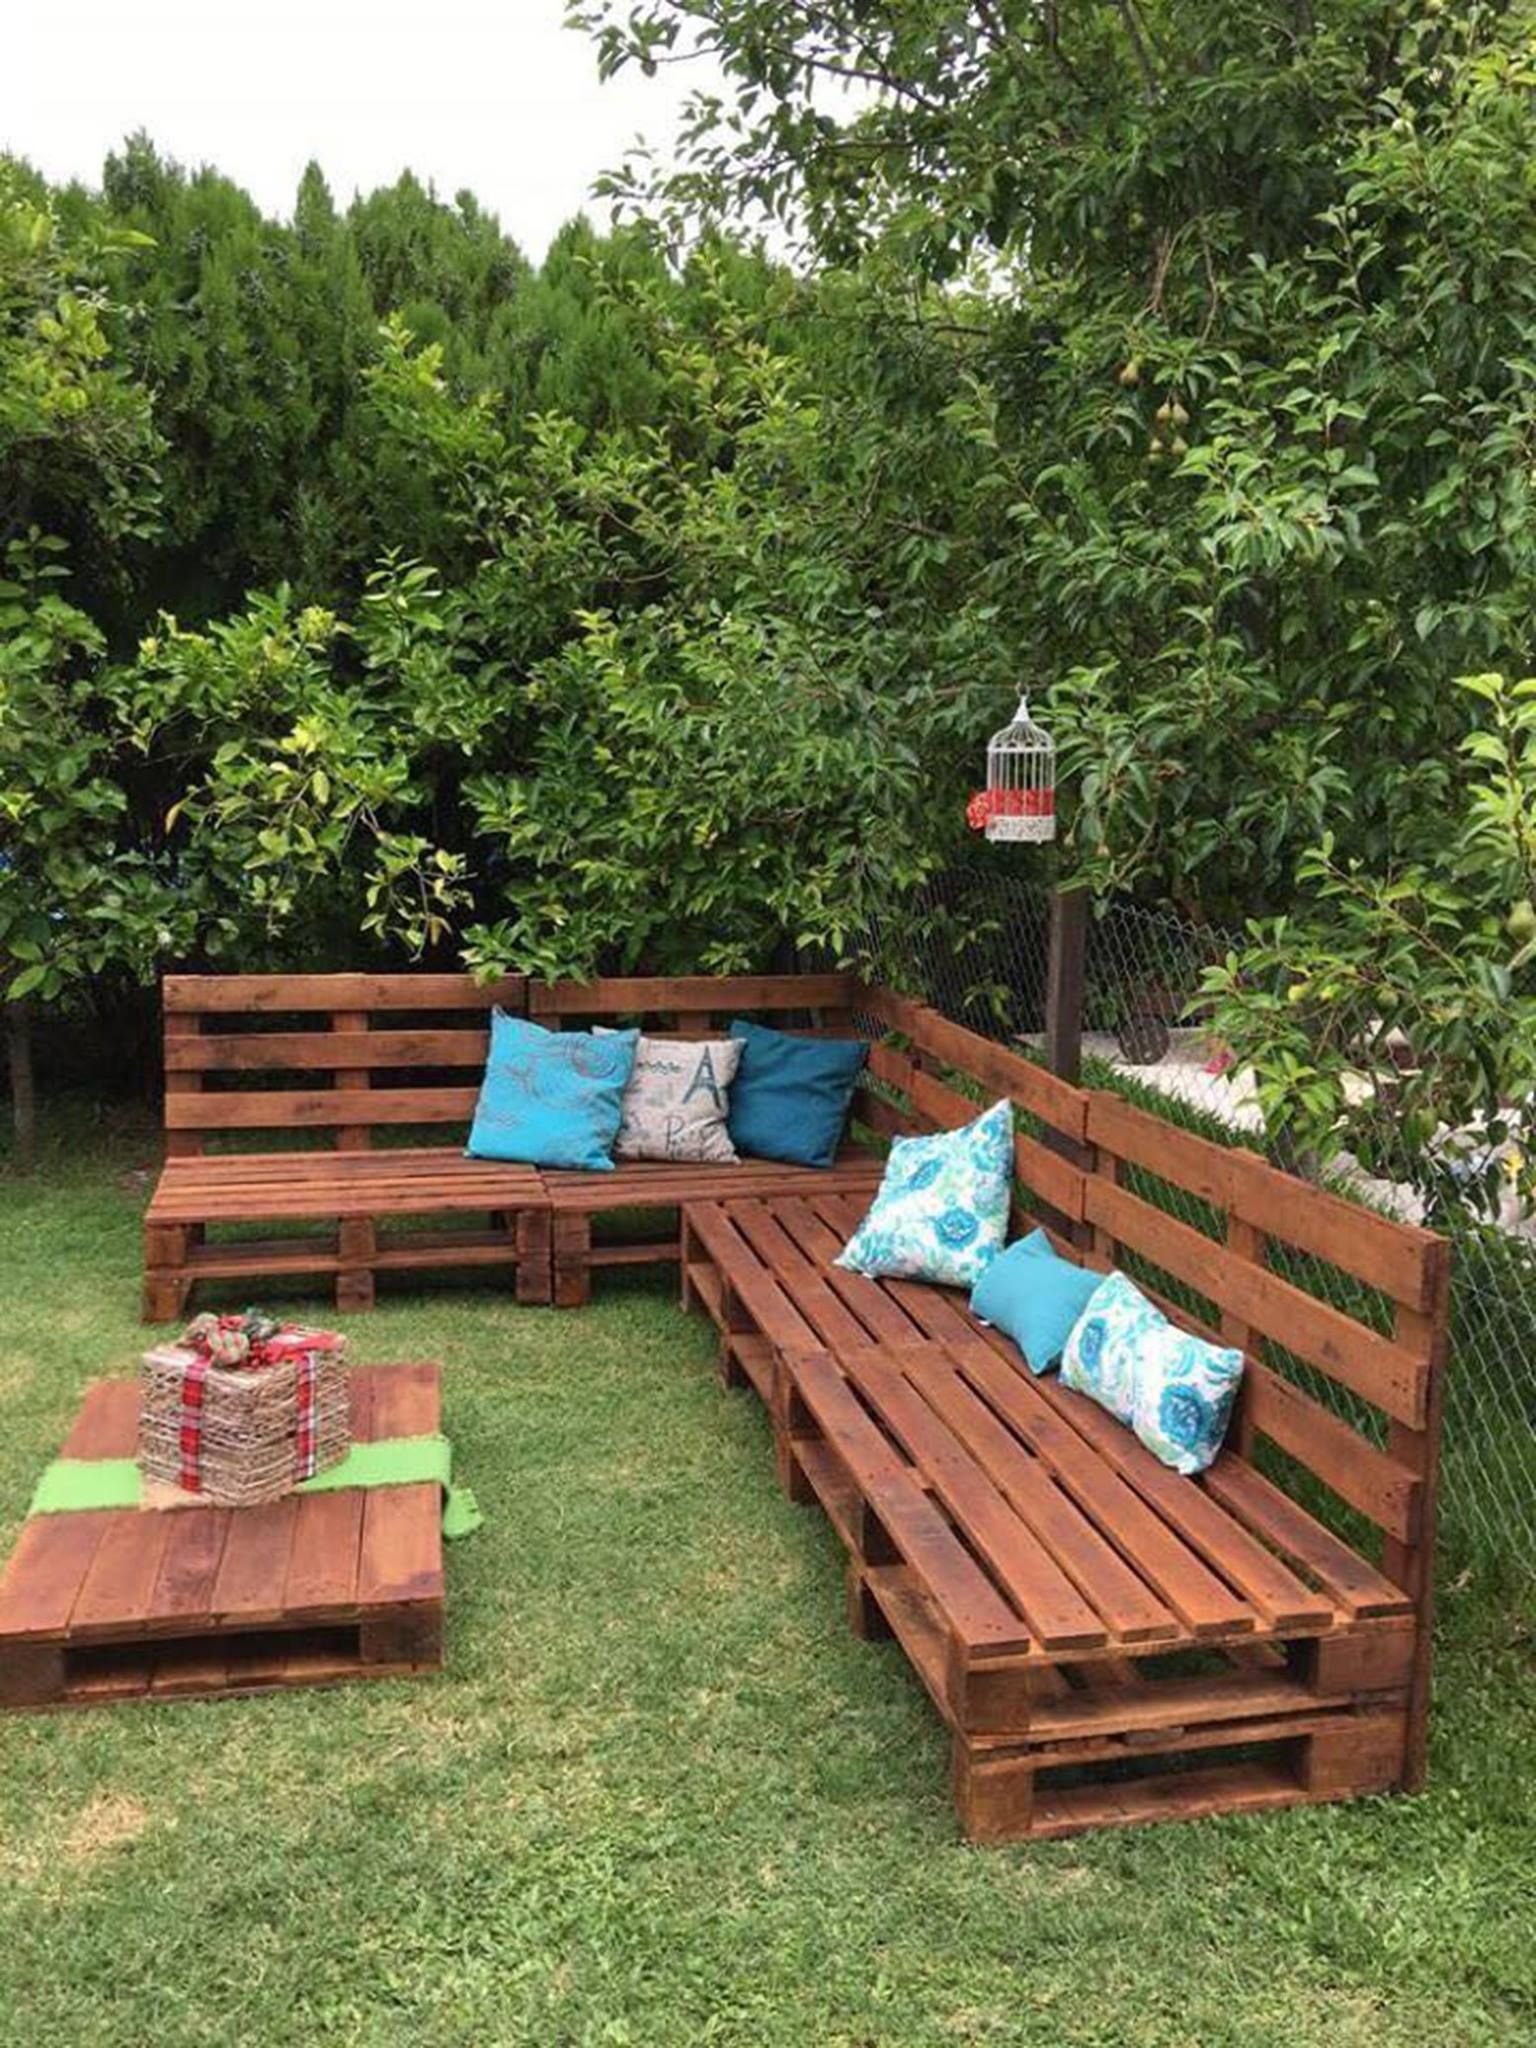 Diy Outdoor Pallet Sofa These Are The Best Pallet Ideas For The